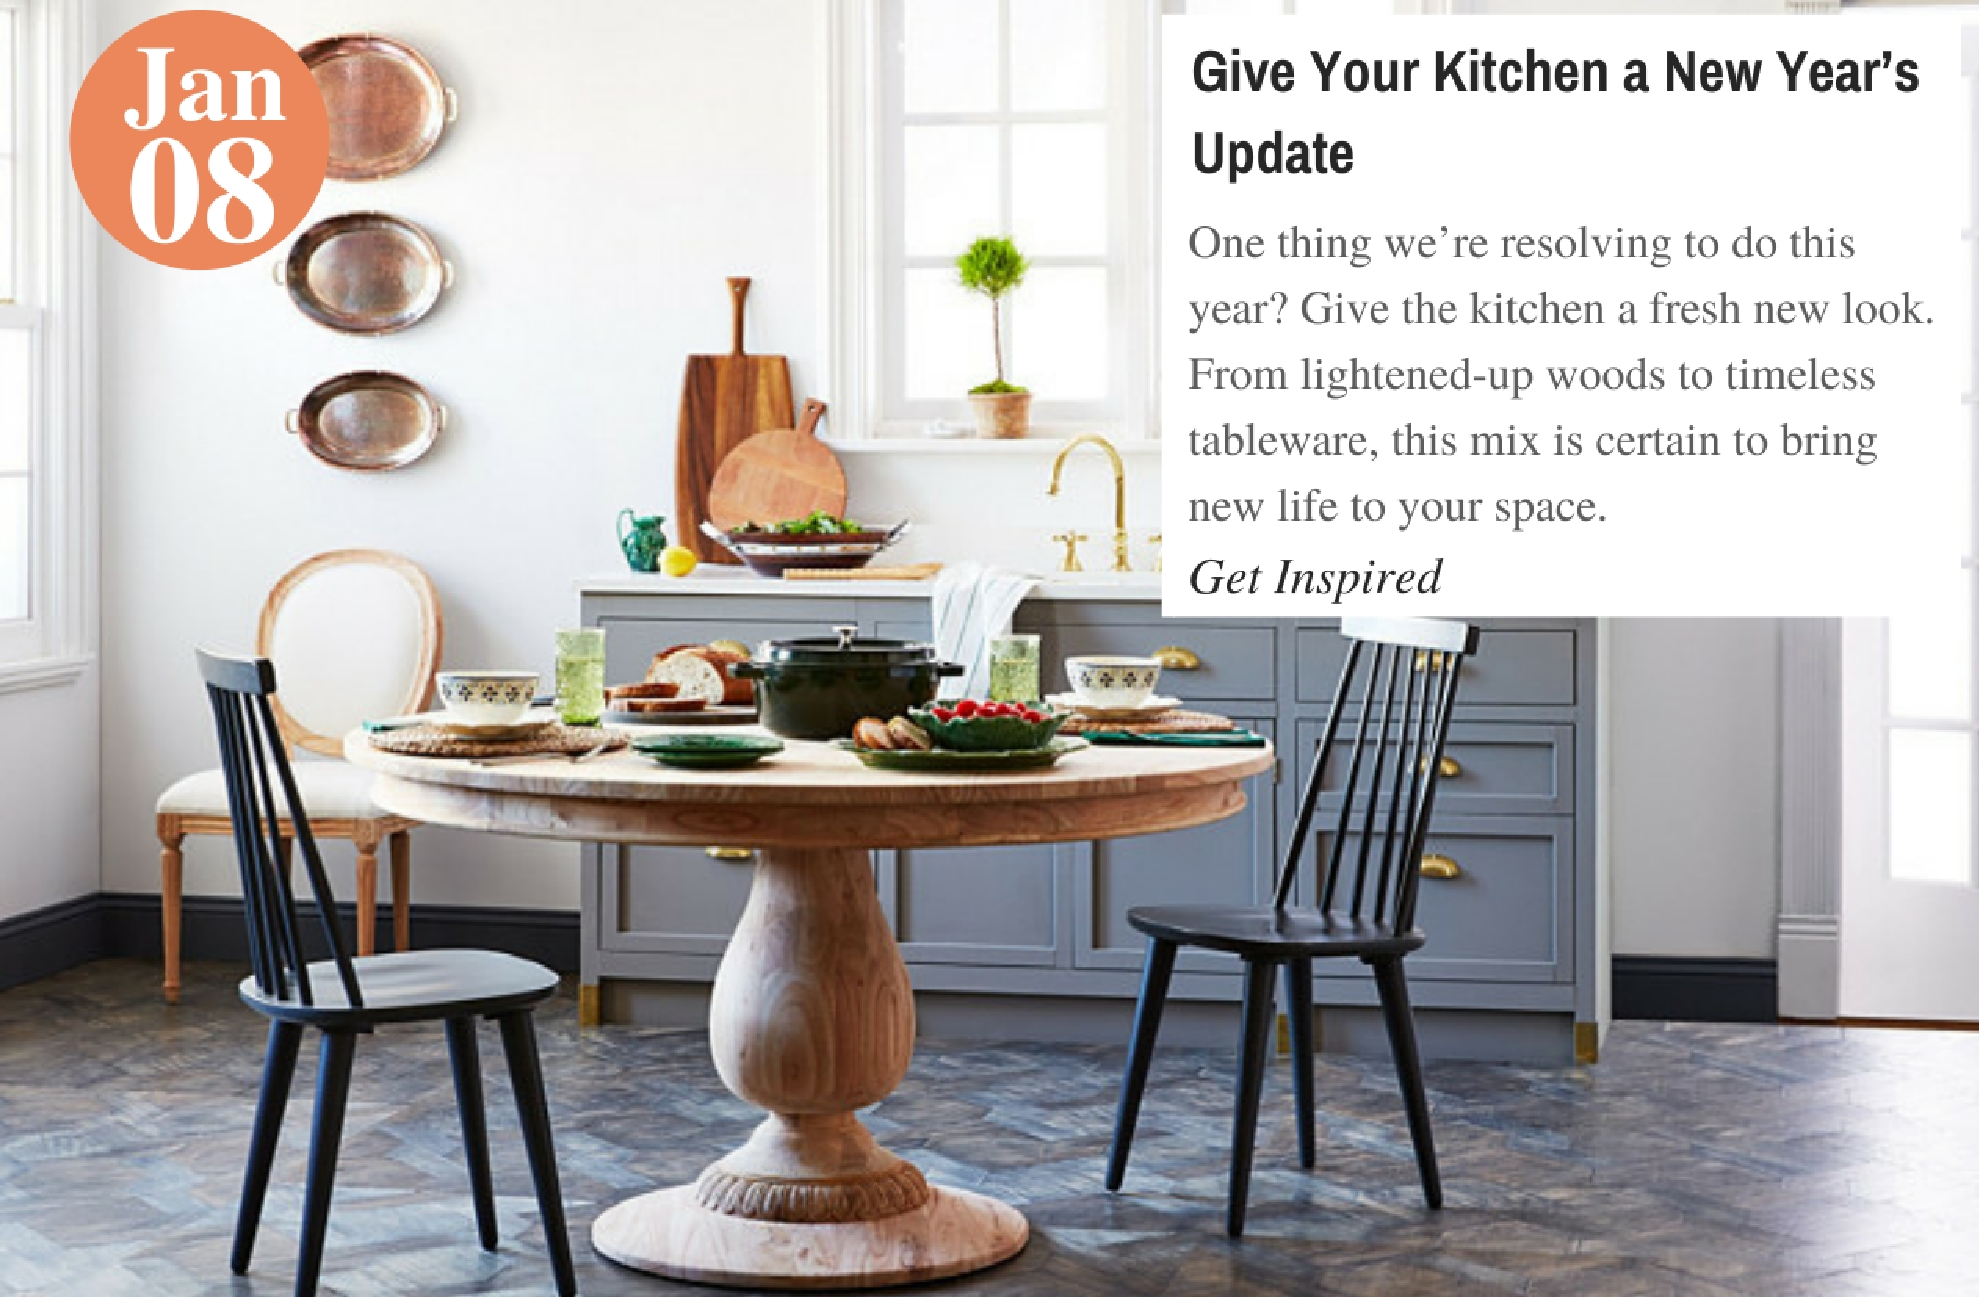 Give Your Kitchen a New Year's Update